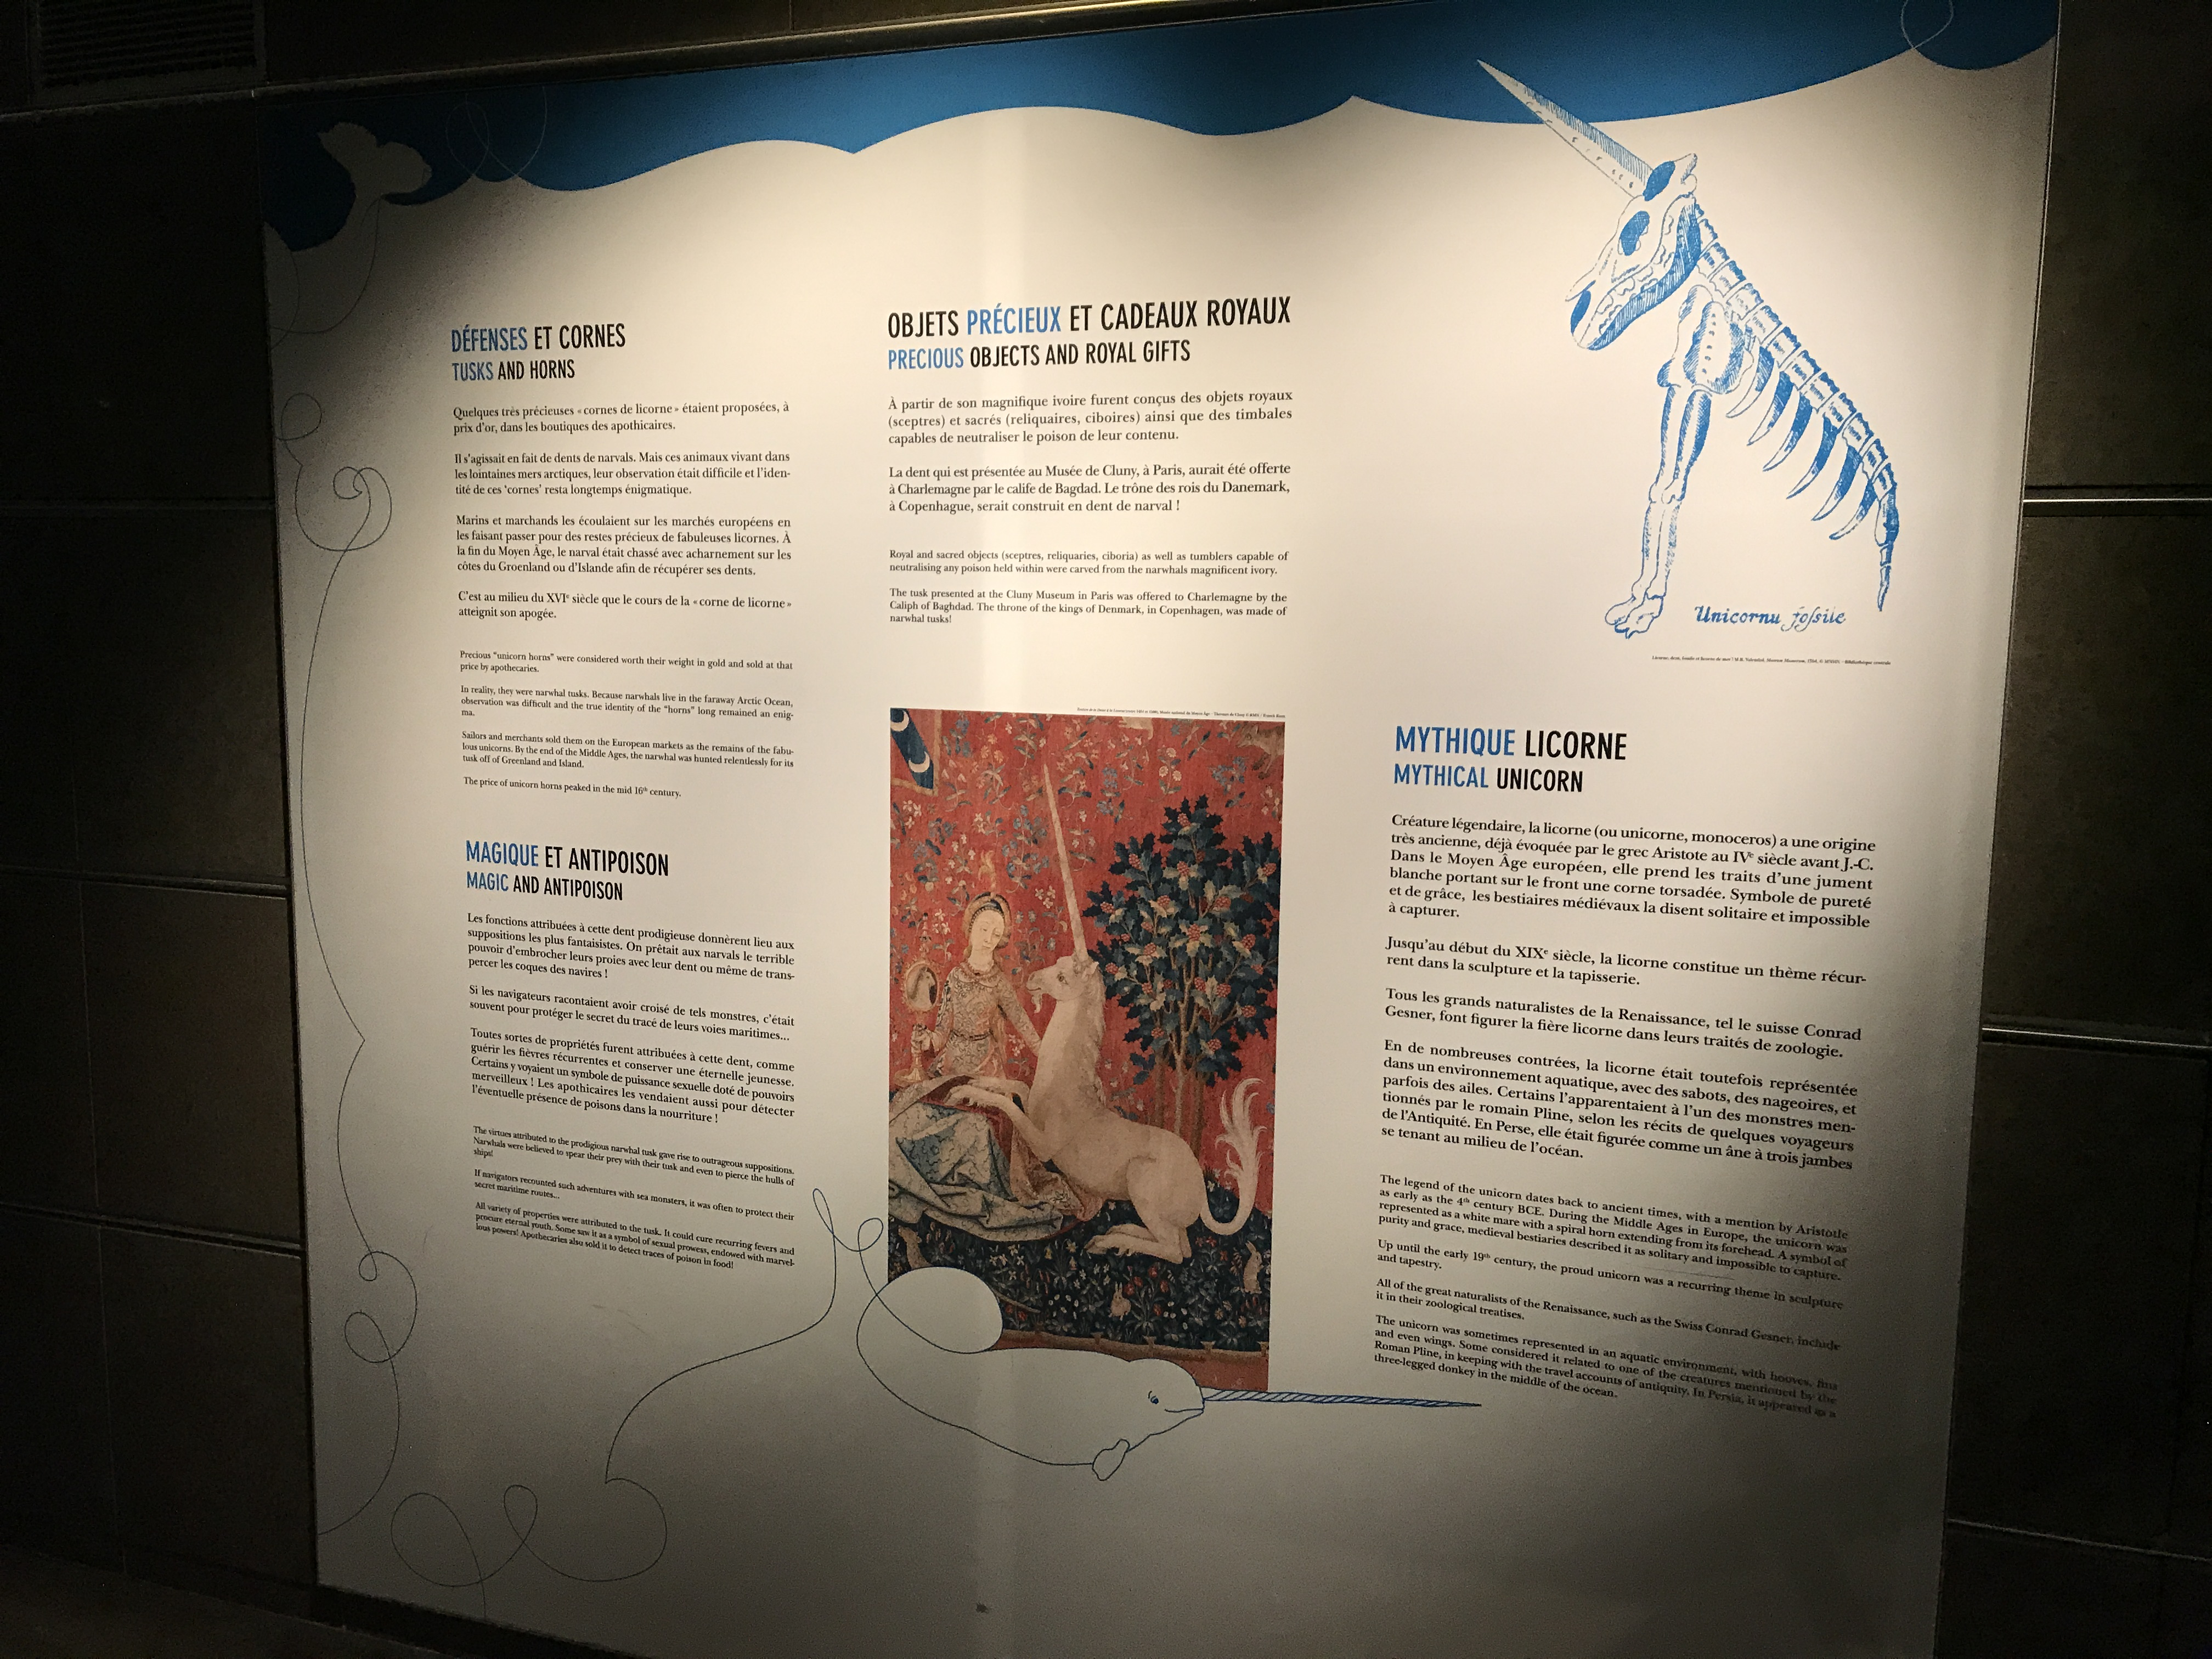 Kids Can Learn About Unicorn Myths and Their Tie to Narwhals at the Grande Galerie de L'Évolution in Paris, France